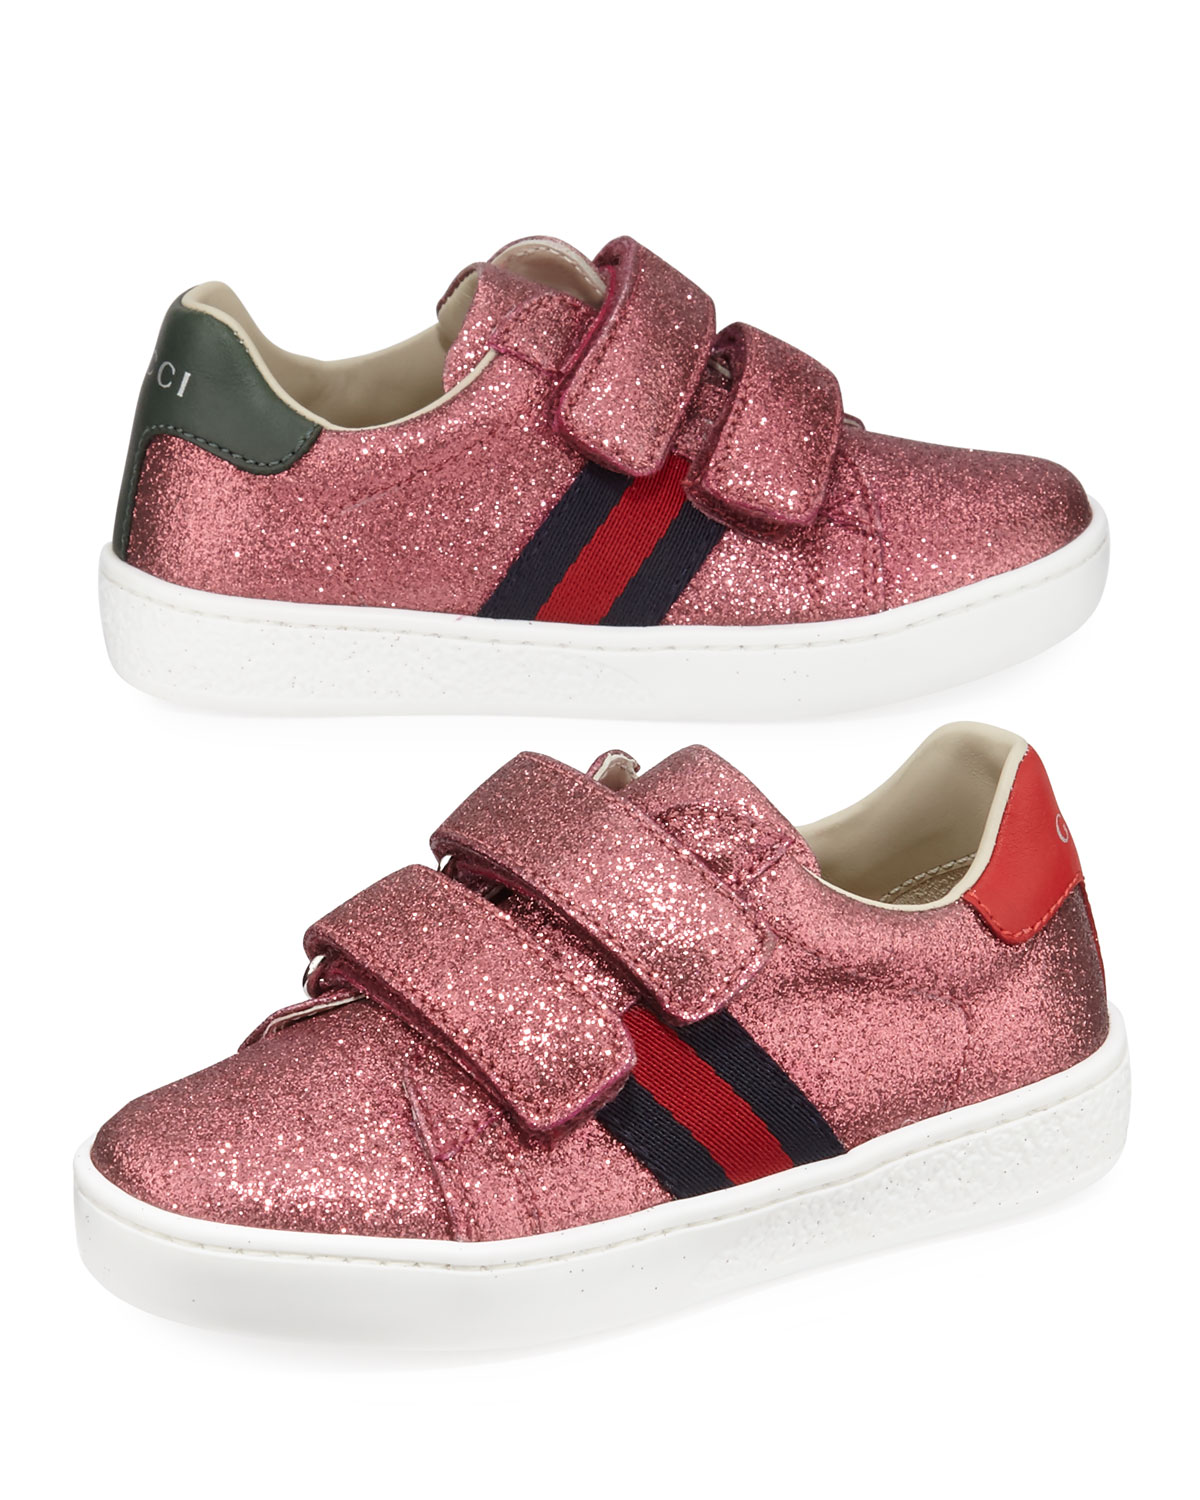 Aceweb new ace web-trim glittered sneakers, baby/toddler